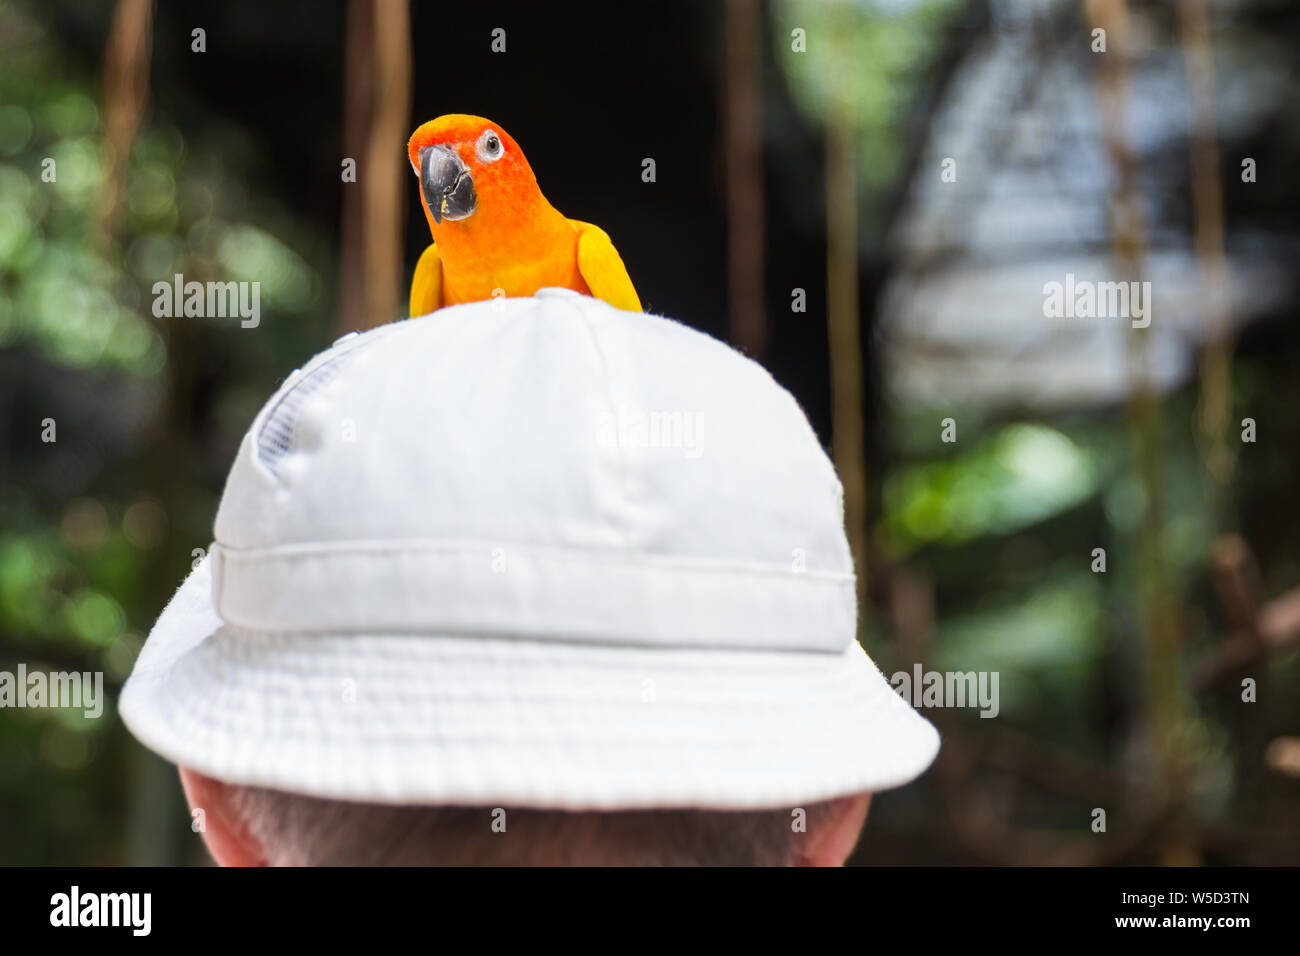 Parrot Play Stock Photos & Parrot Play Stock Images - Alamy